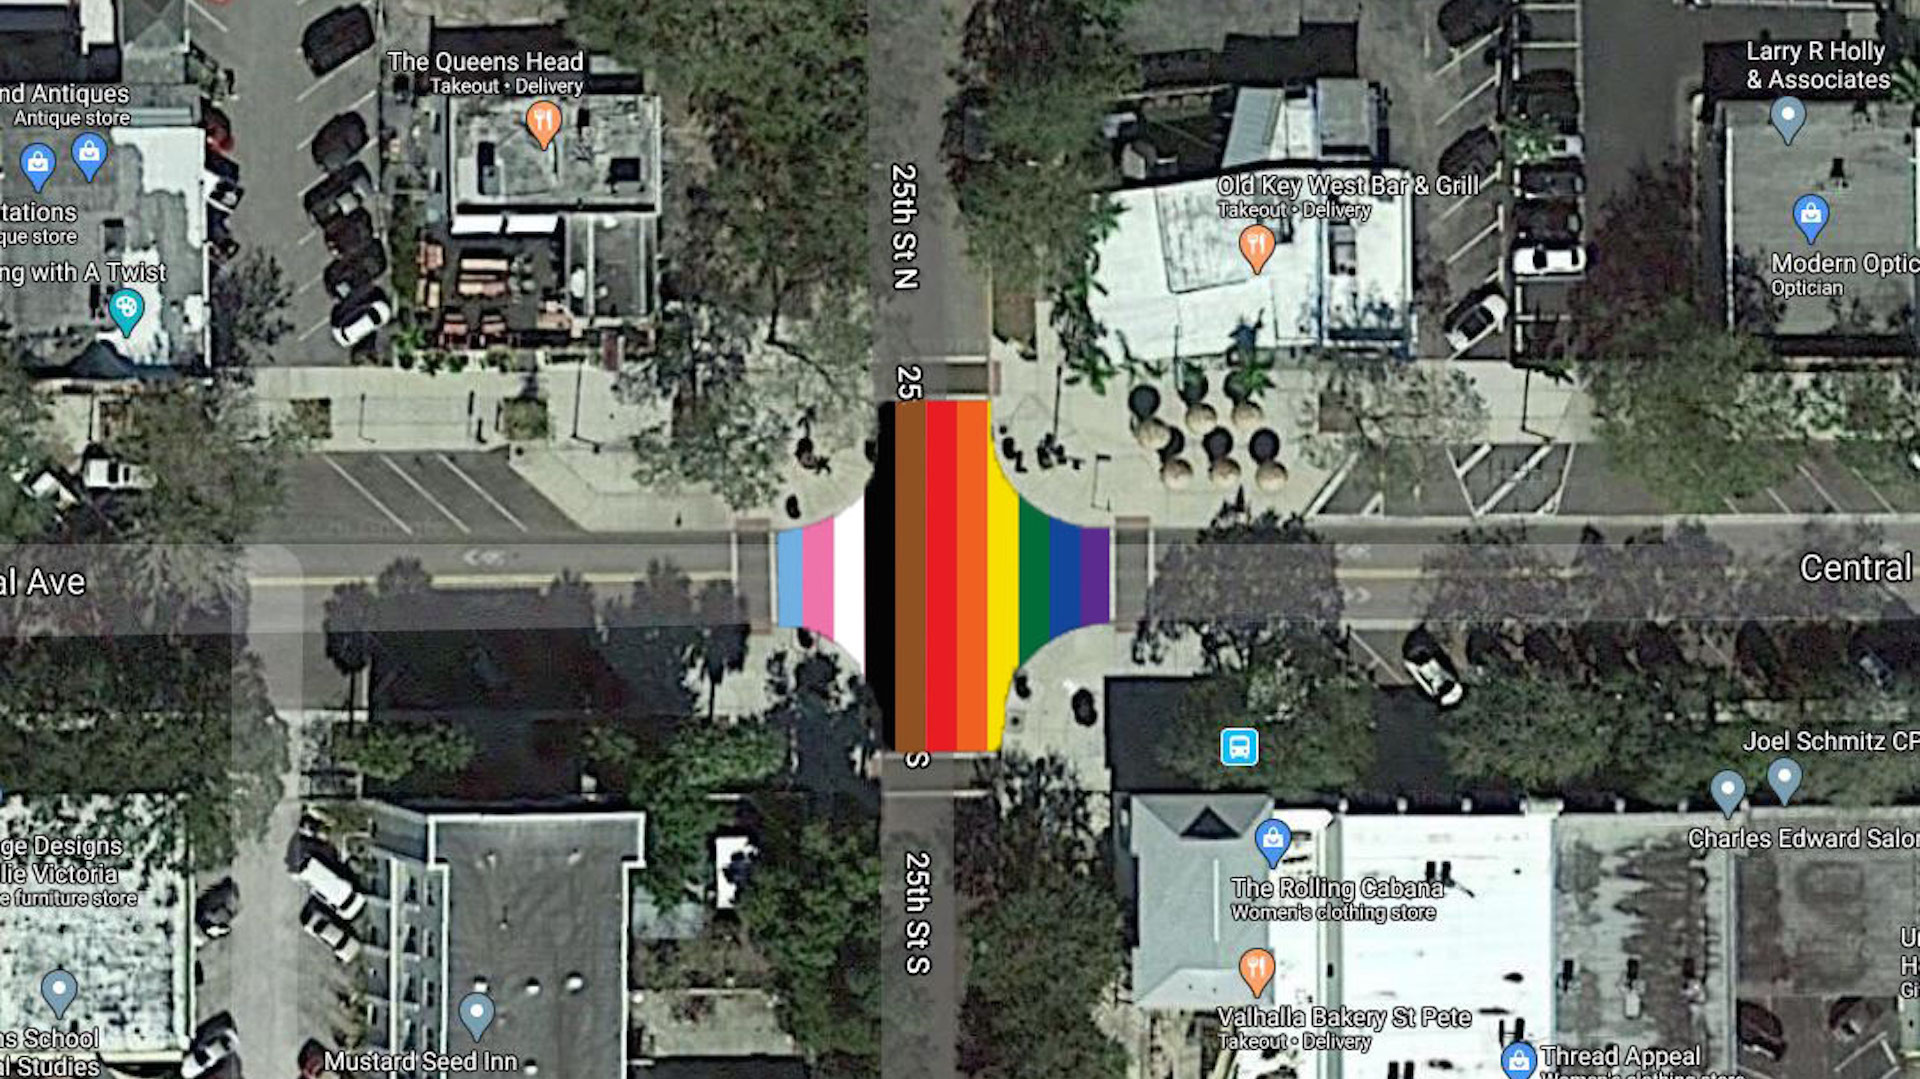 Aerial rendering of a new street mural with all the colors of the pride flag included